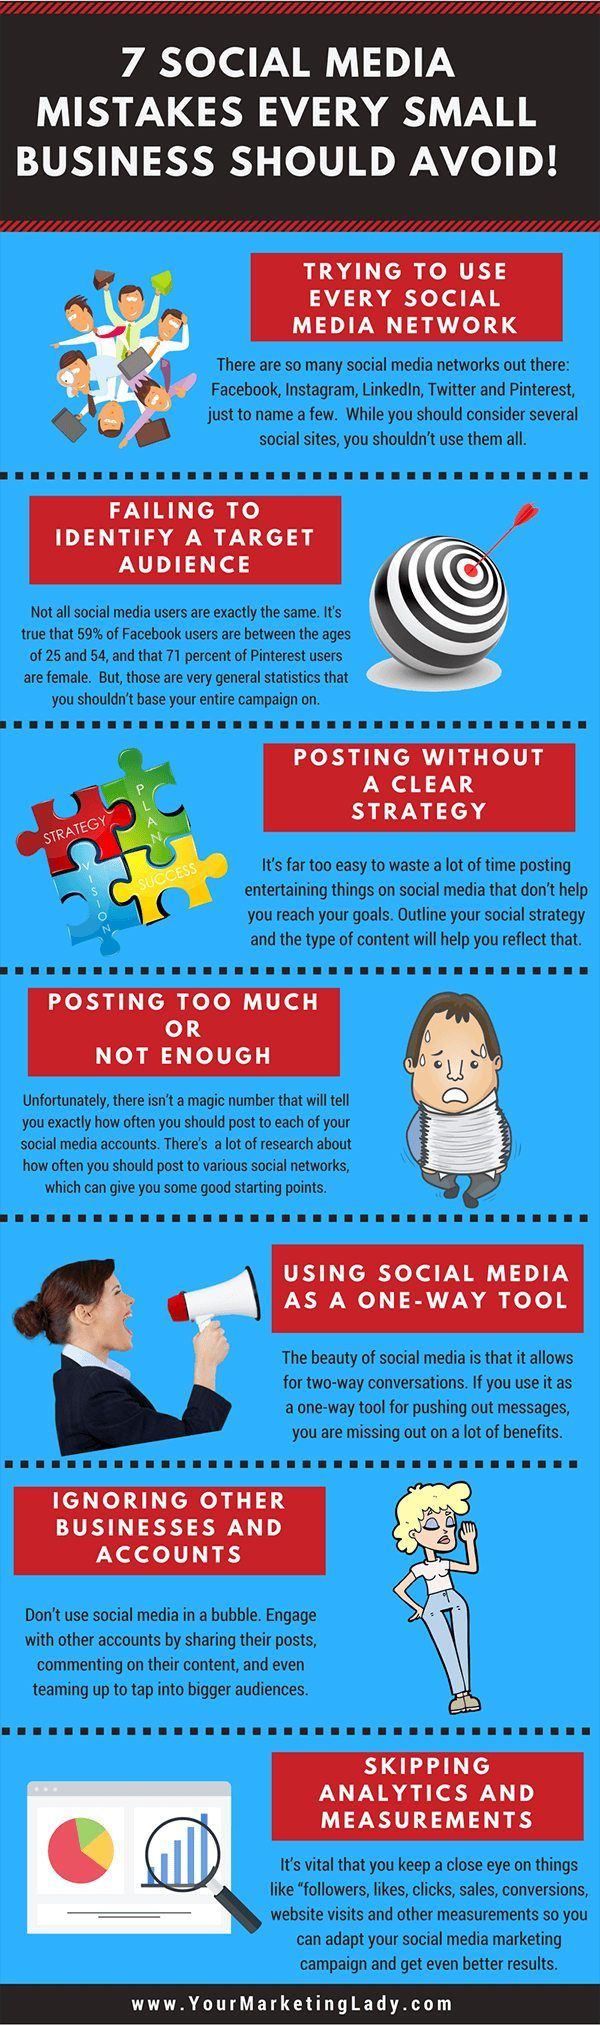 7 #SocialMedia Mistakes Every Small #Business Should Avoid #Infographic